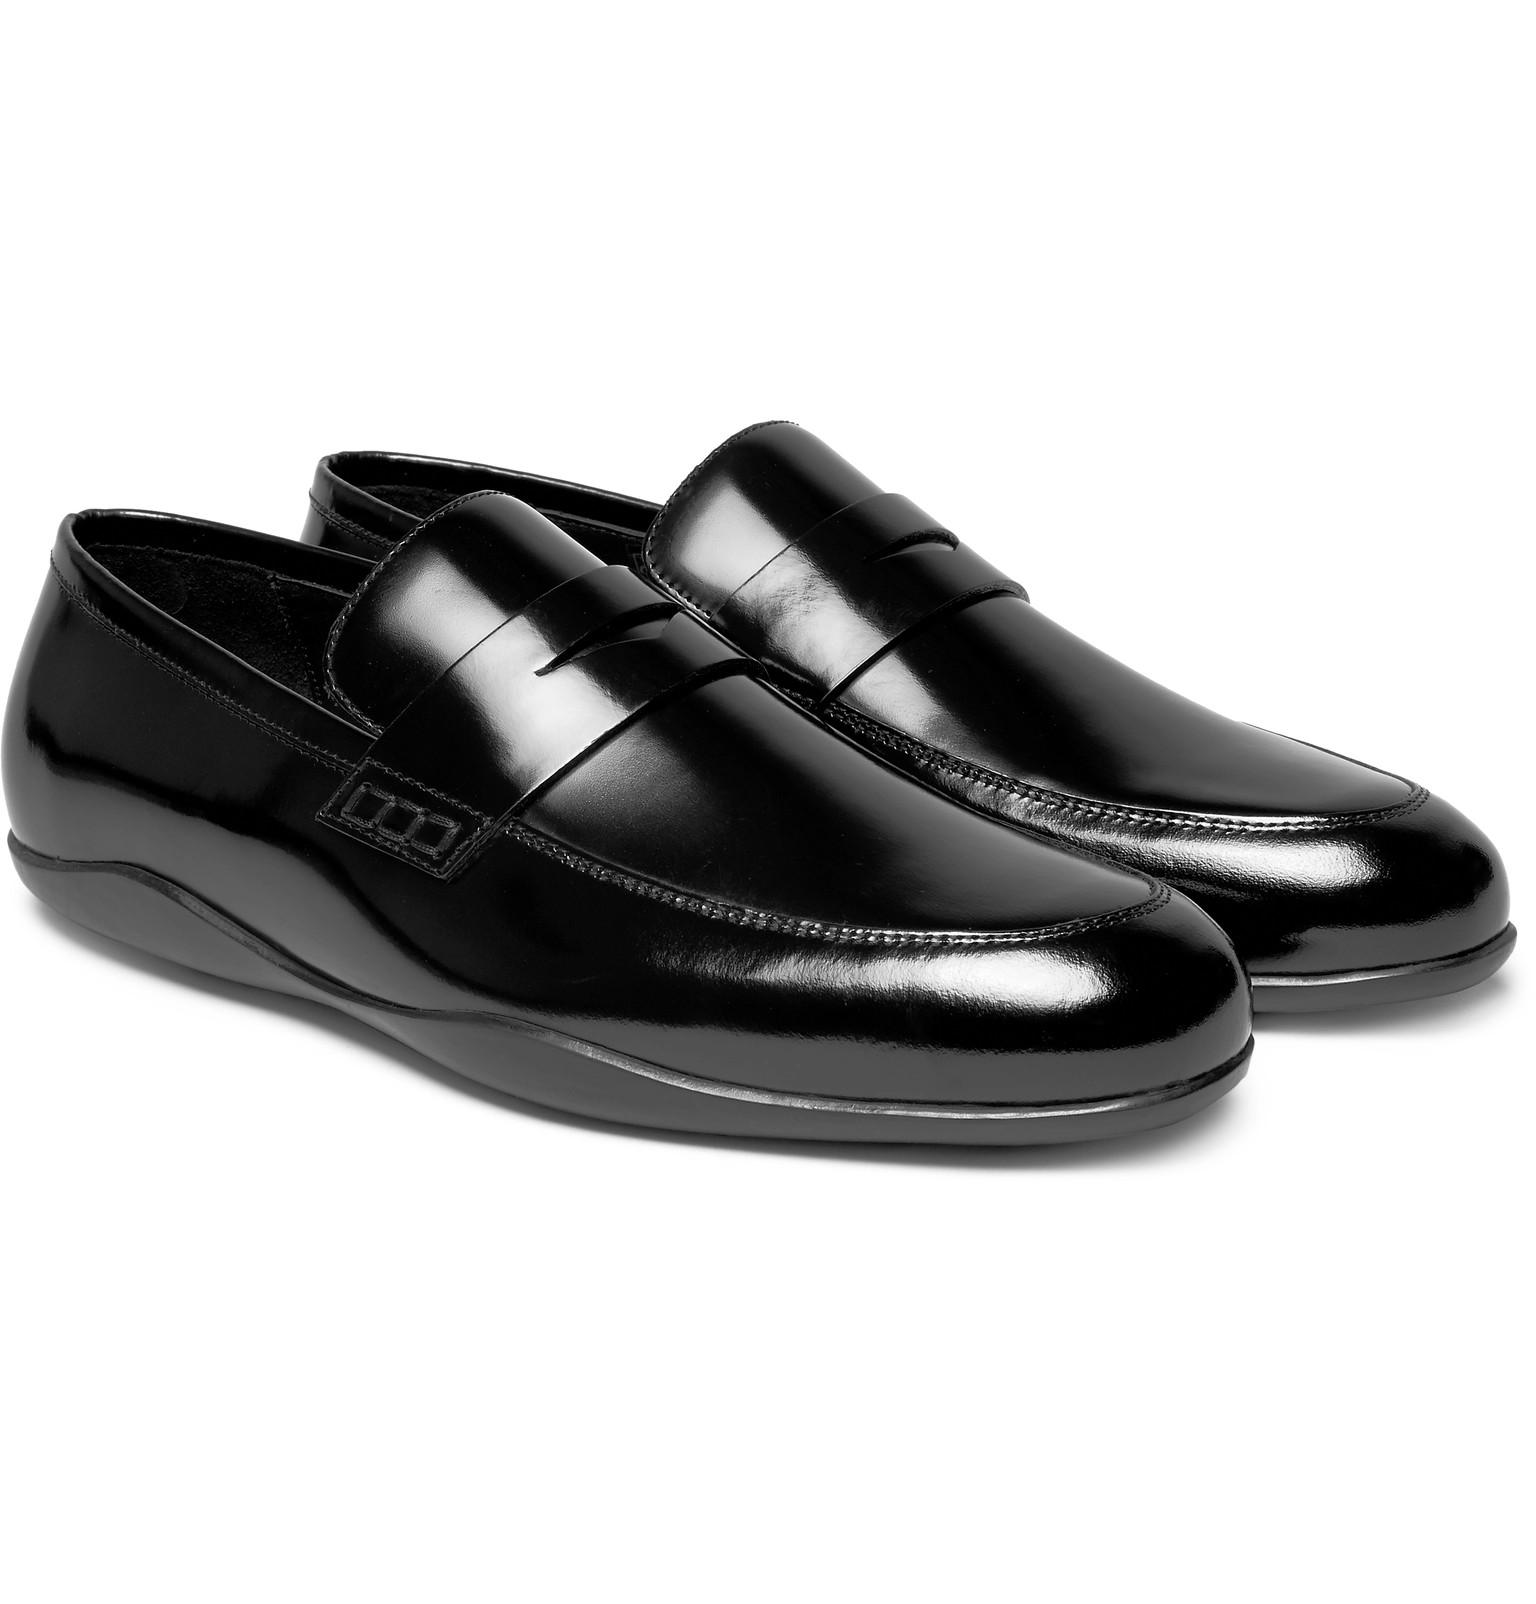 Clearance Online Ebay Mens Downing Bit-Embellished Leather Loafers Harrys of London Free Shipping 2018 New Cheap Sale Amazing Price Online Cheap Online Footaction Sale Online ncopHm2QX